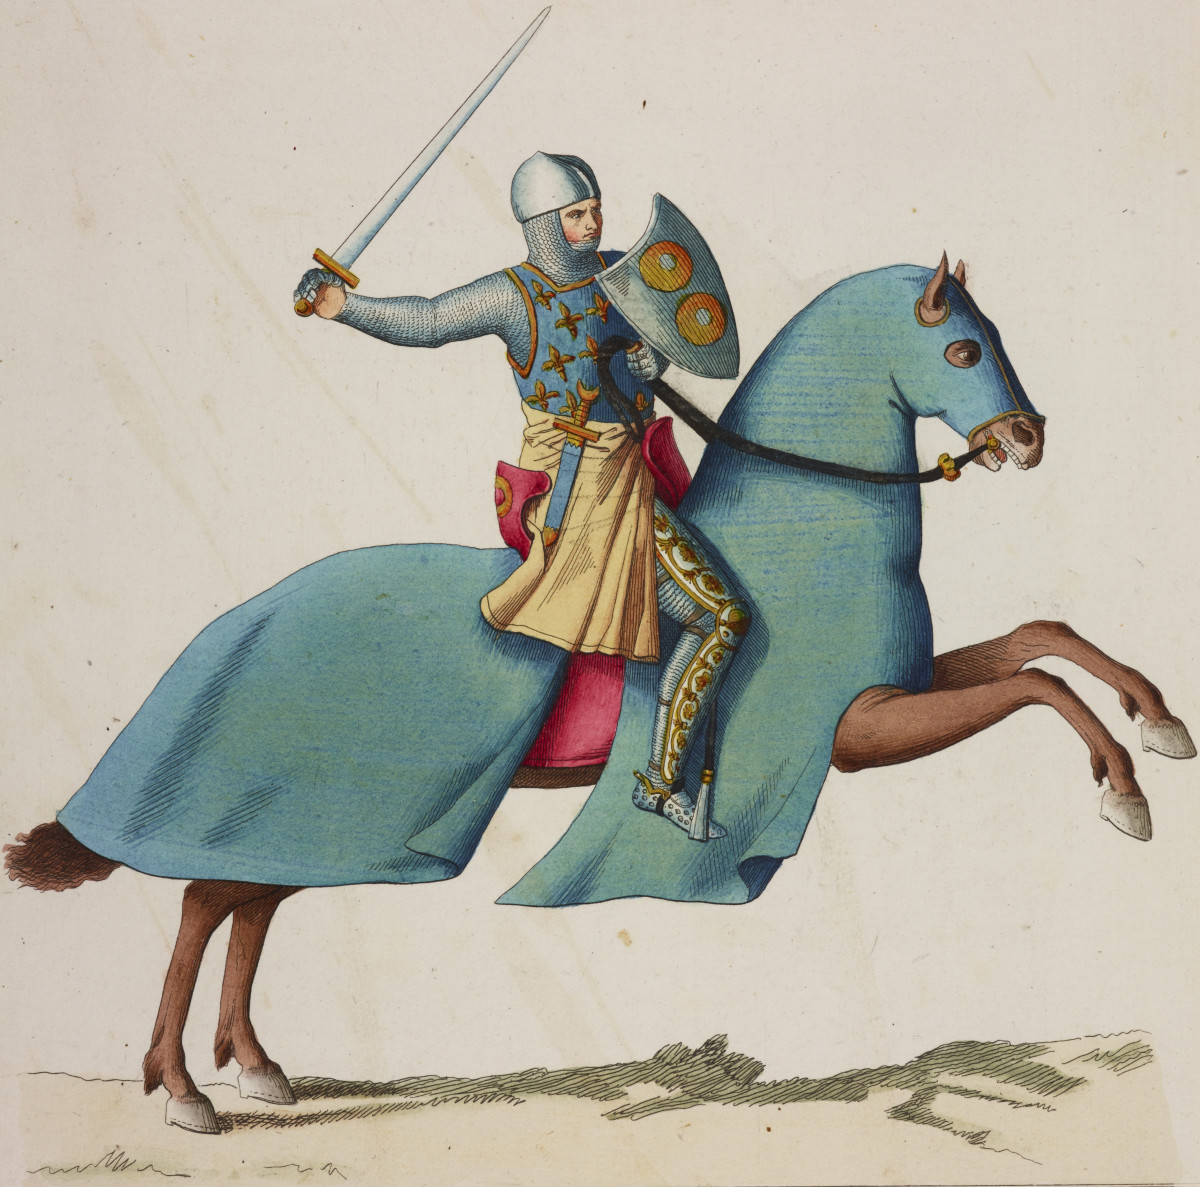 Thirteenth-century French knight